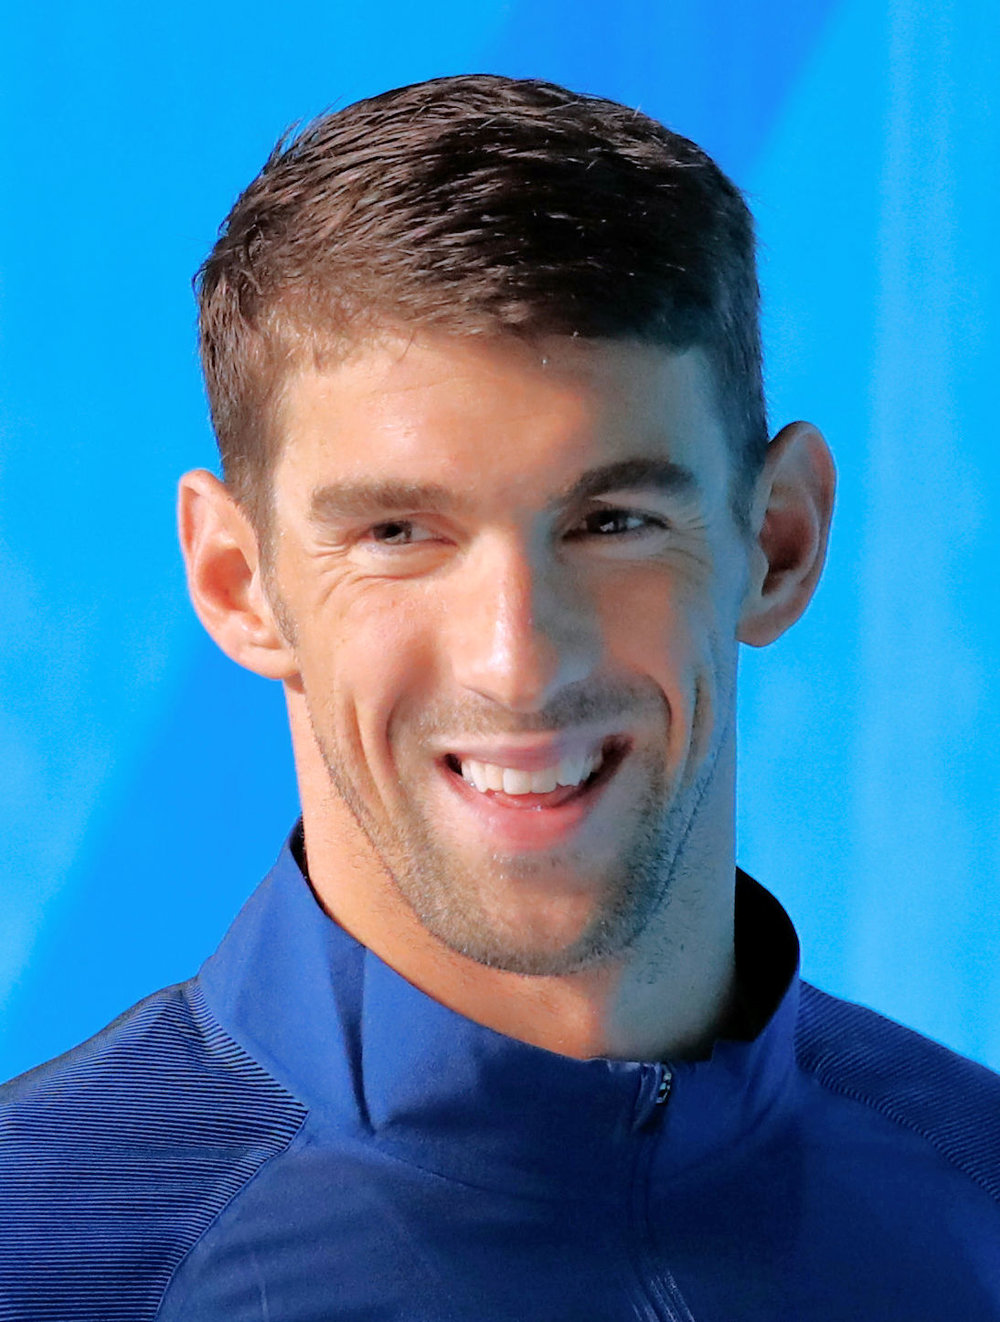 Michael Phelps Source: Wikipedia